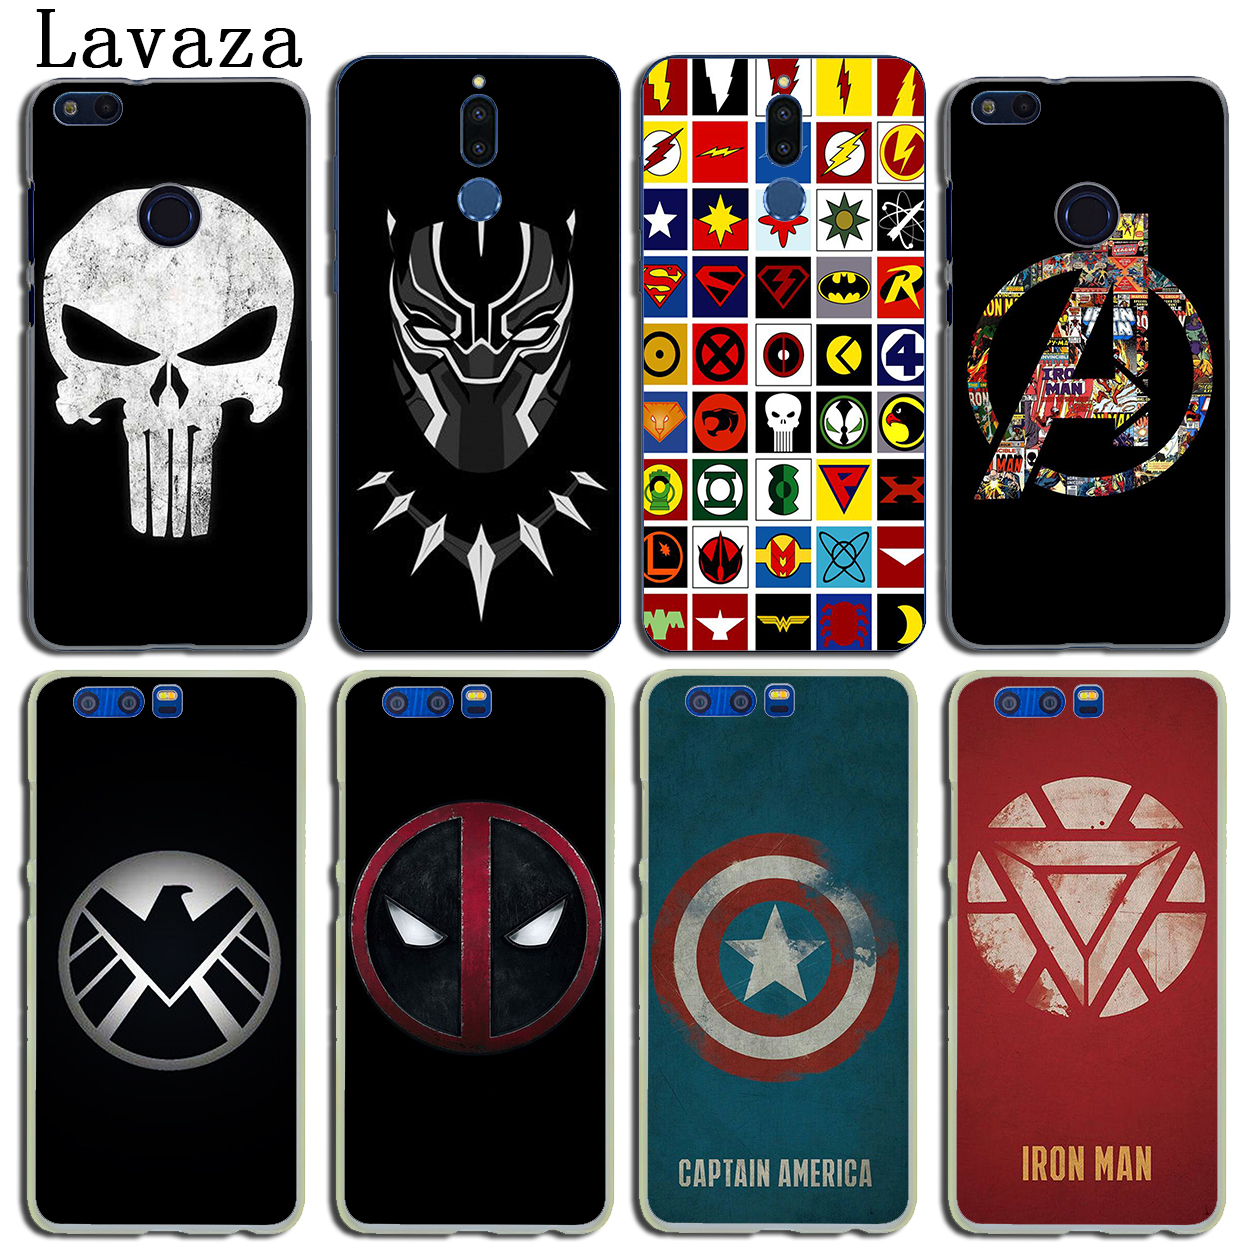 <font><b>Marvel</b></font> Super hero logo <font><b>Case</b></font> for <font><b>Huawei</b></font> Y9 <font><b>Y7</b></font> Y6 Prime <font><b>2019</b></font> 2018 Nova 5I 4 3i 3 2i Honor 20 10 8X 8C 8 9X 9 Lite 6C 7C 7X 7A Pro image